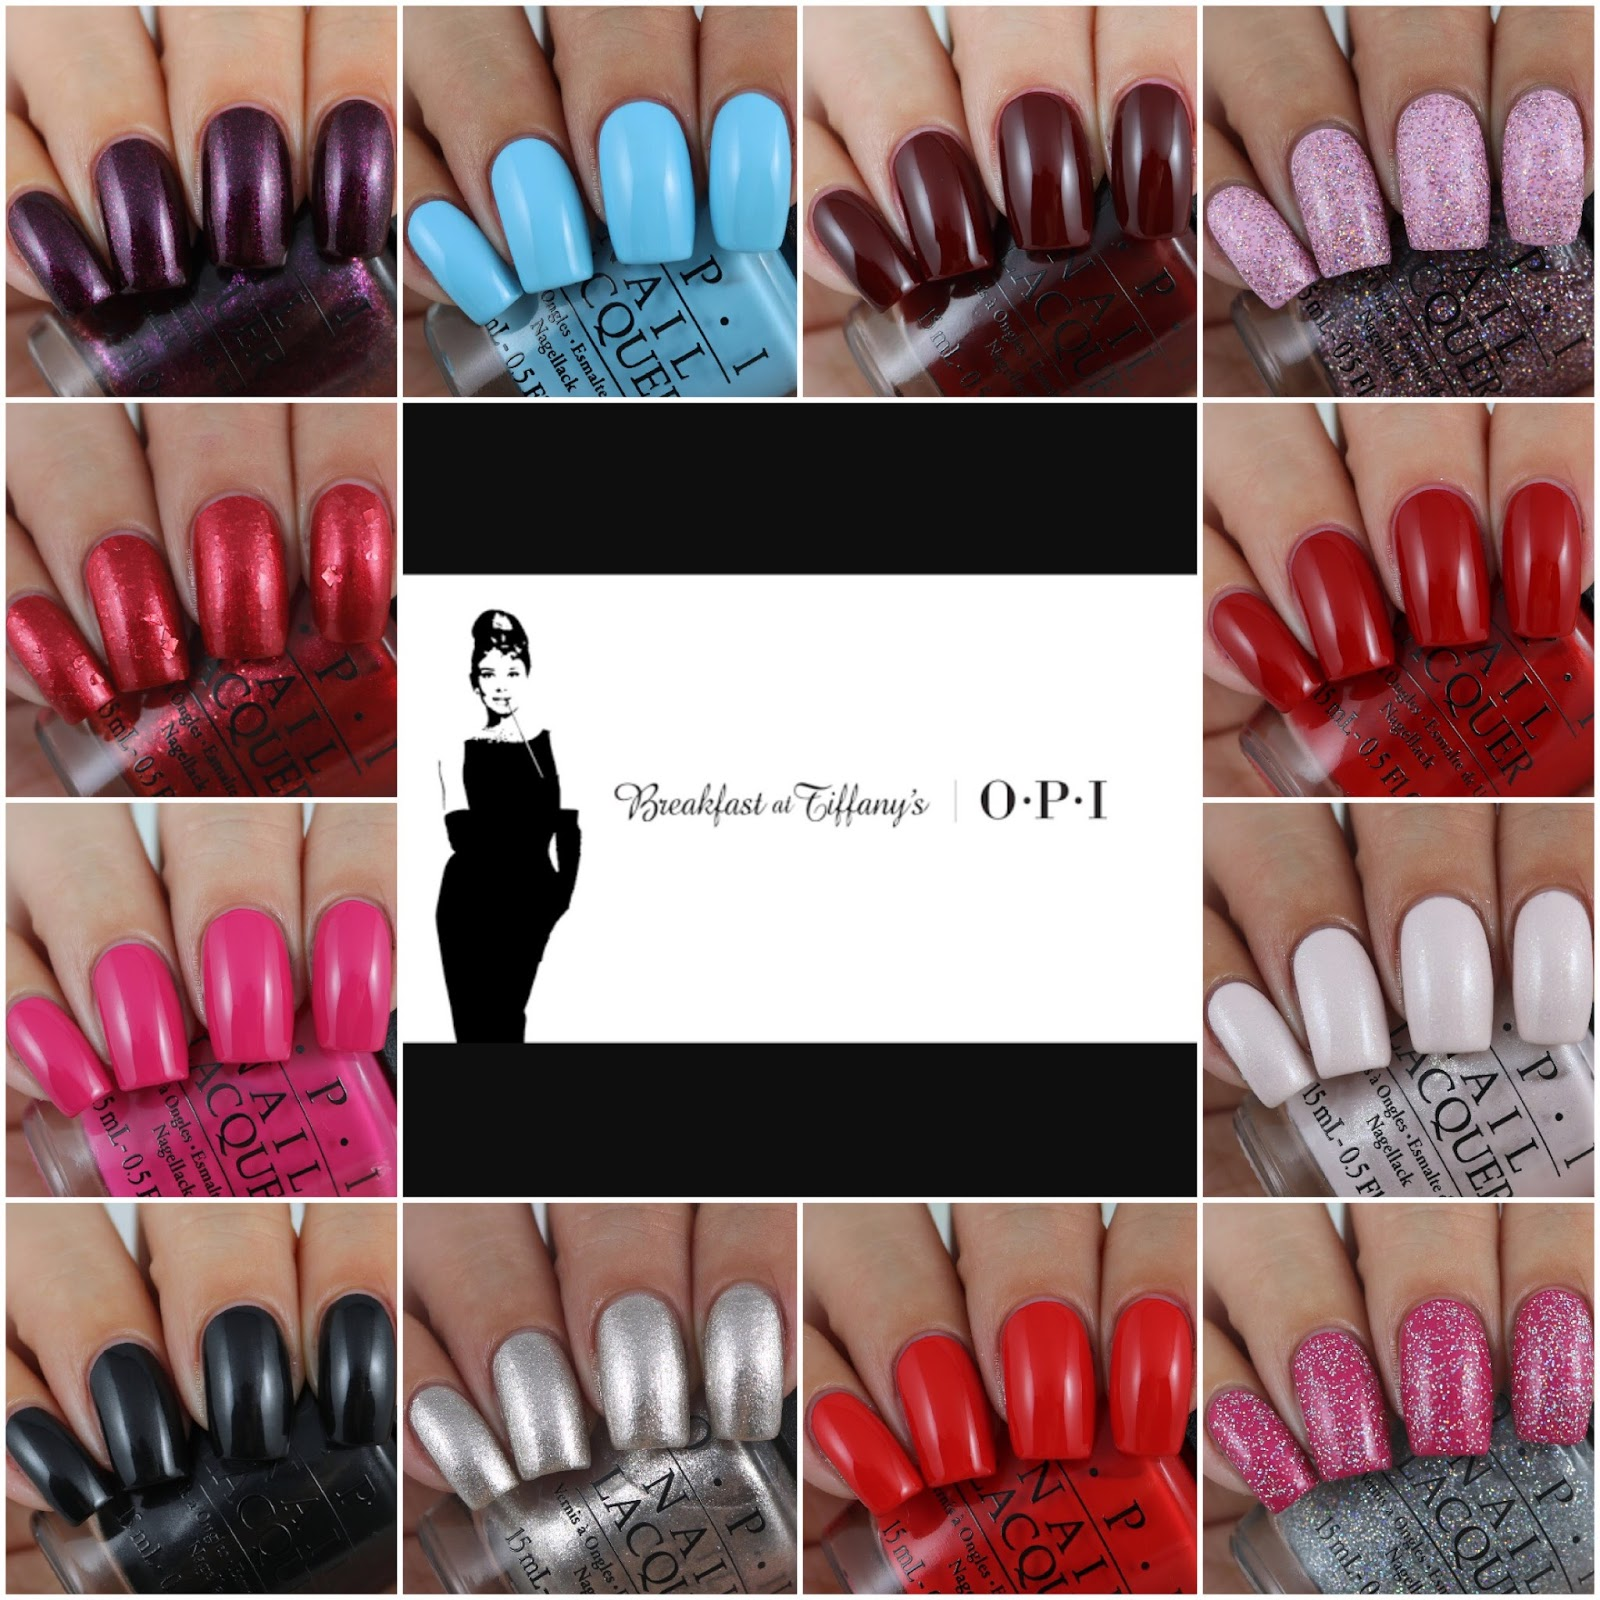 Black dress not optional opi - Opi Breakfast At Tiffany S Collection Swatches Amp Review By Olivia